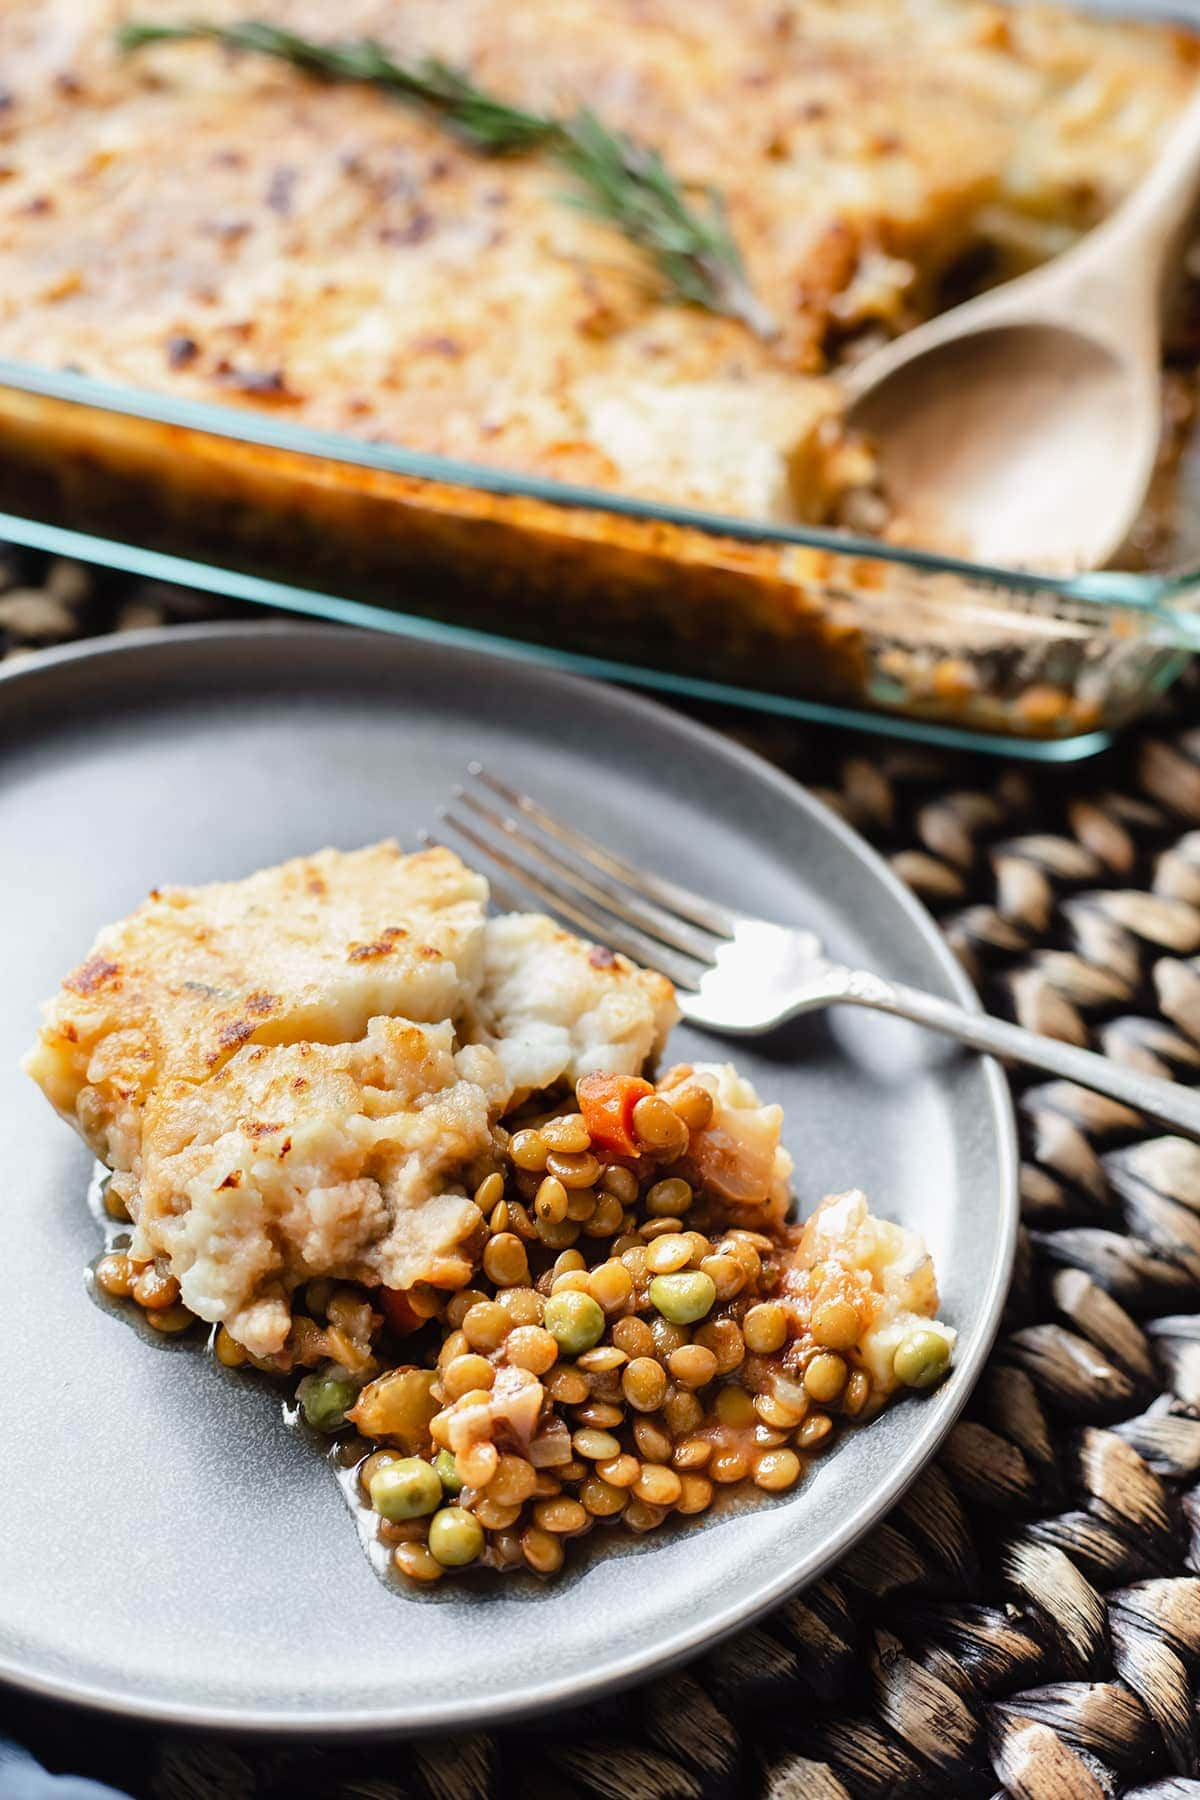 vegan lentil shepherd's pie overlay in a rectangular glass serving dish with a spoon with a serving in a grey plate on a brown background